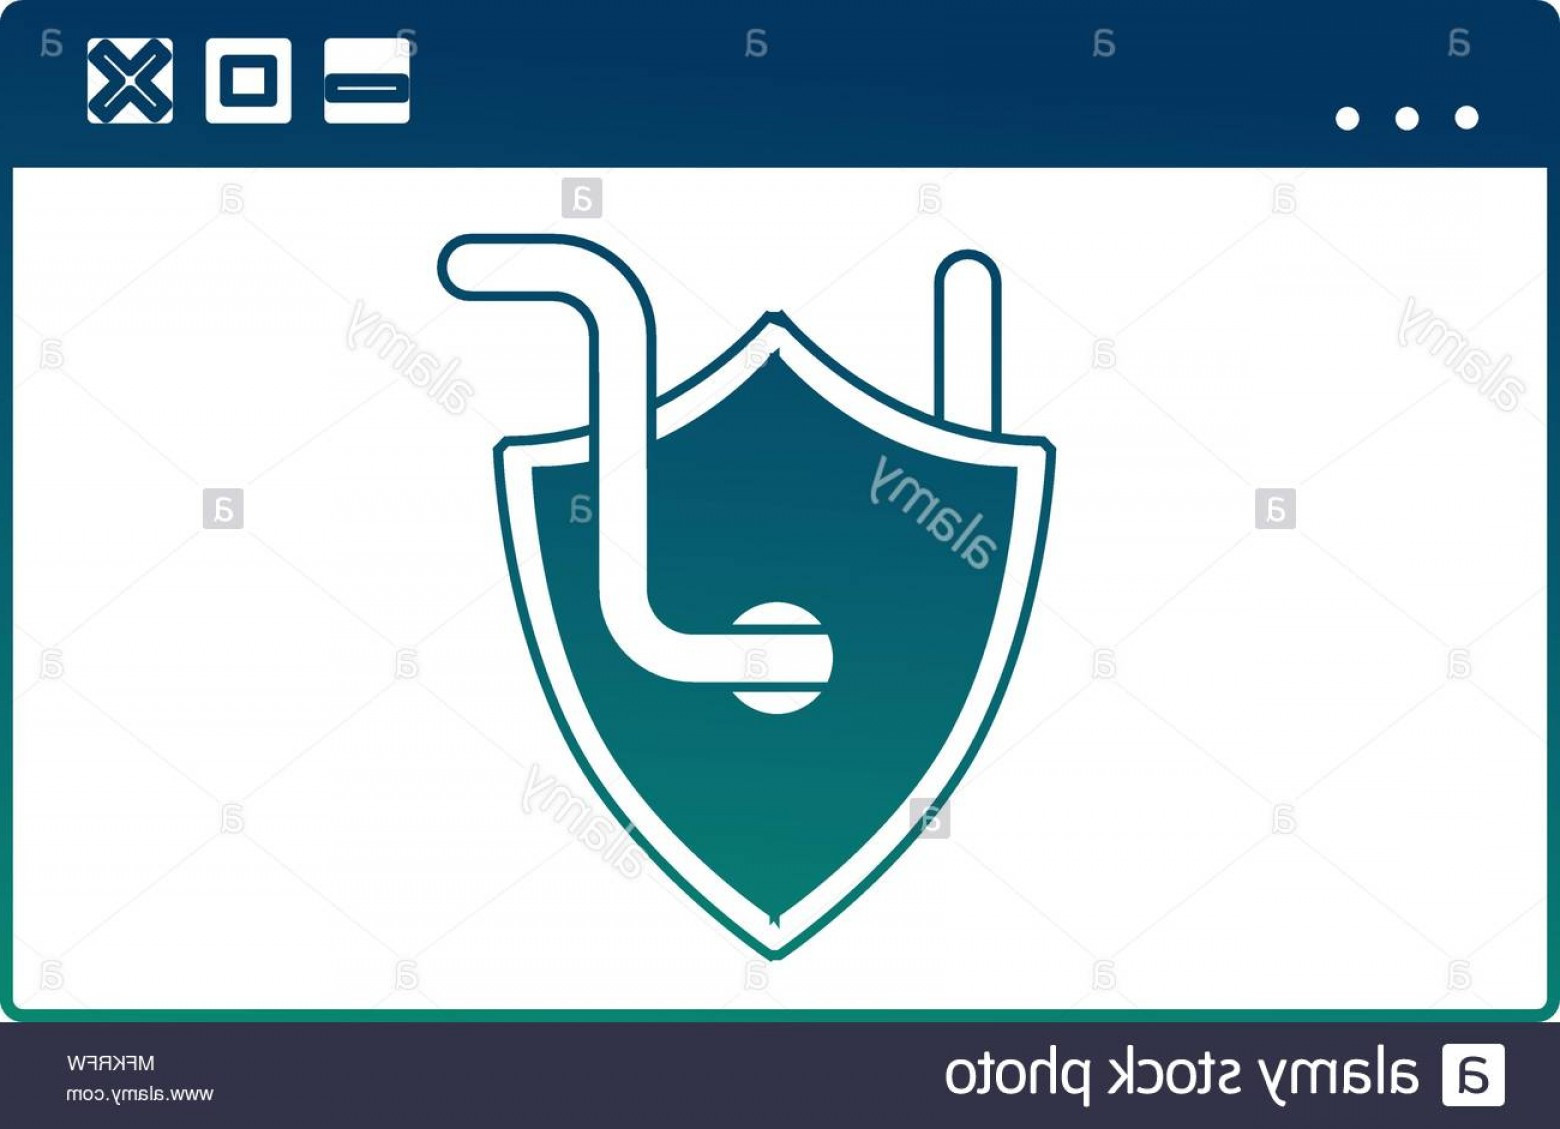 Cyber Defense Vector: Cyber Security Website Worm Virus Crime Attack Image